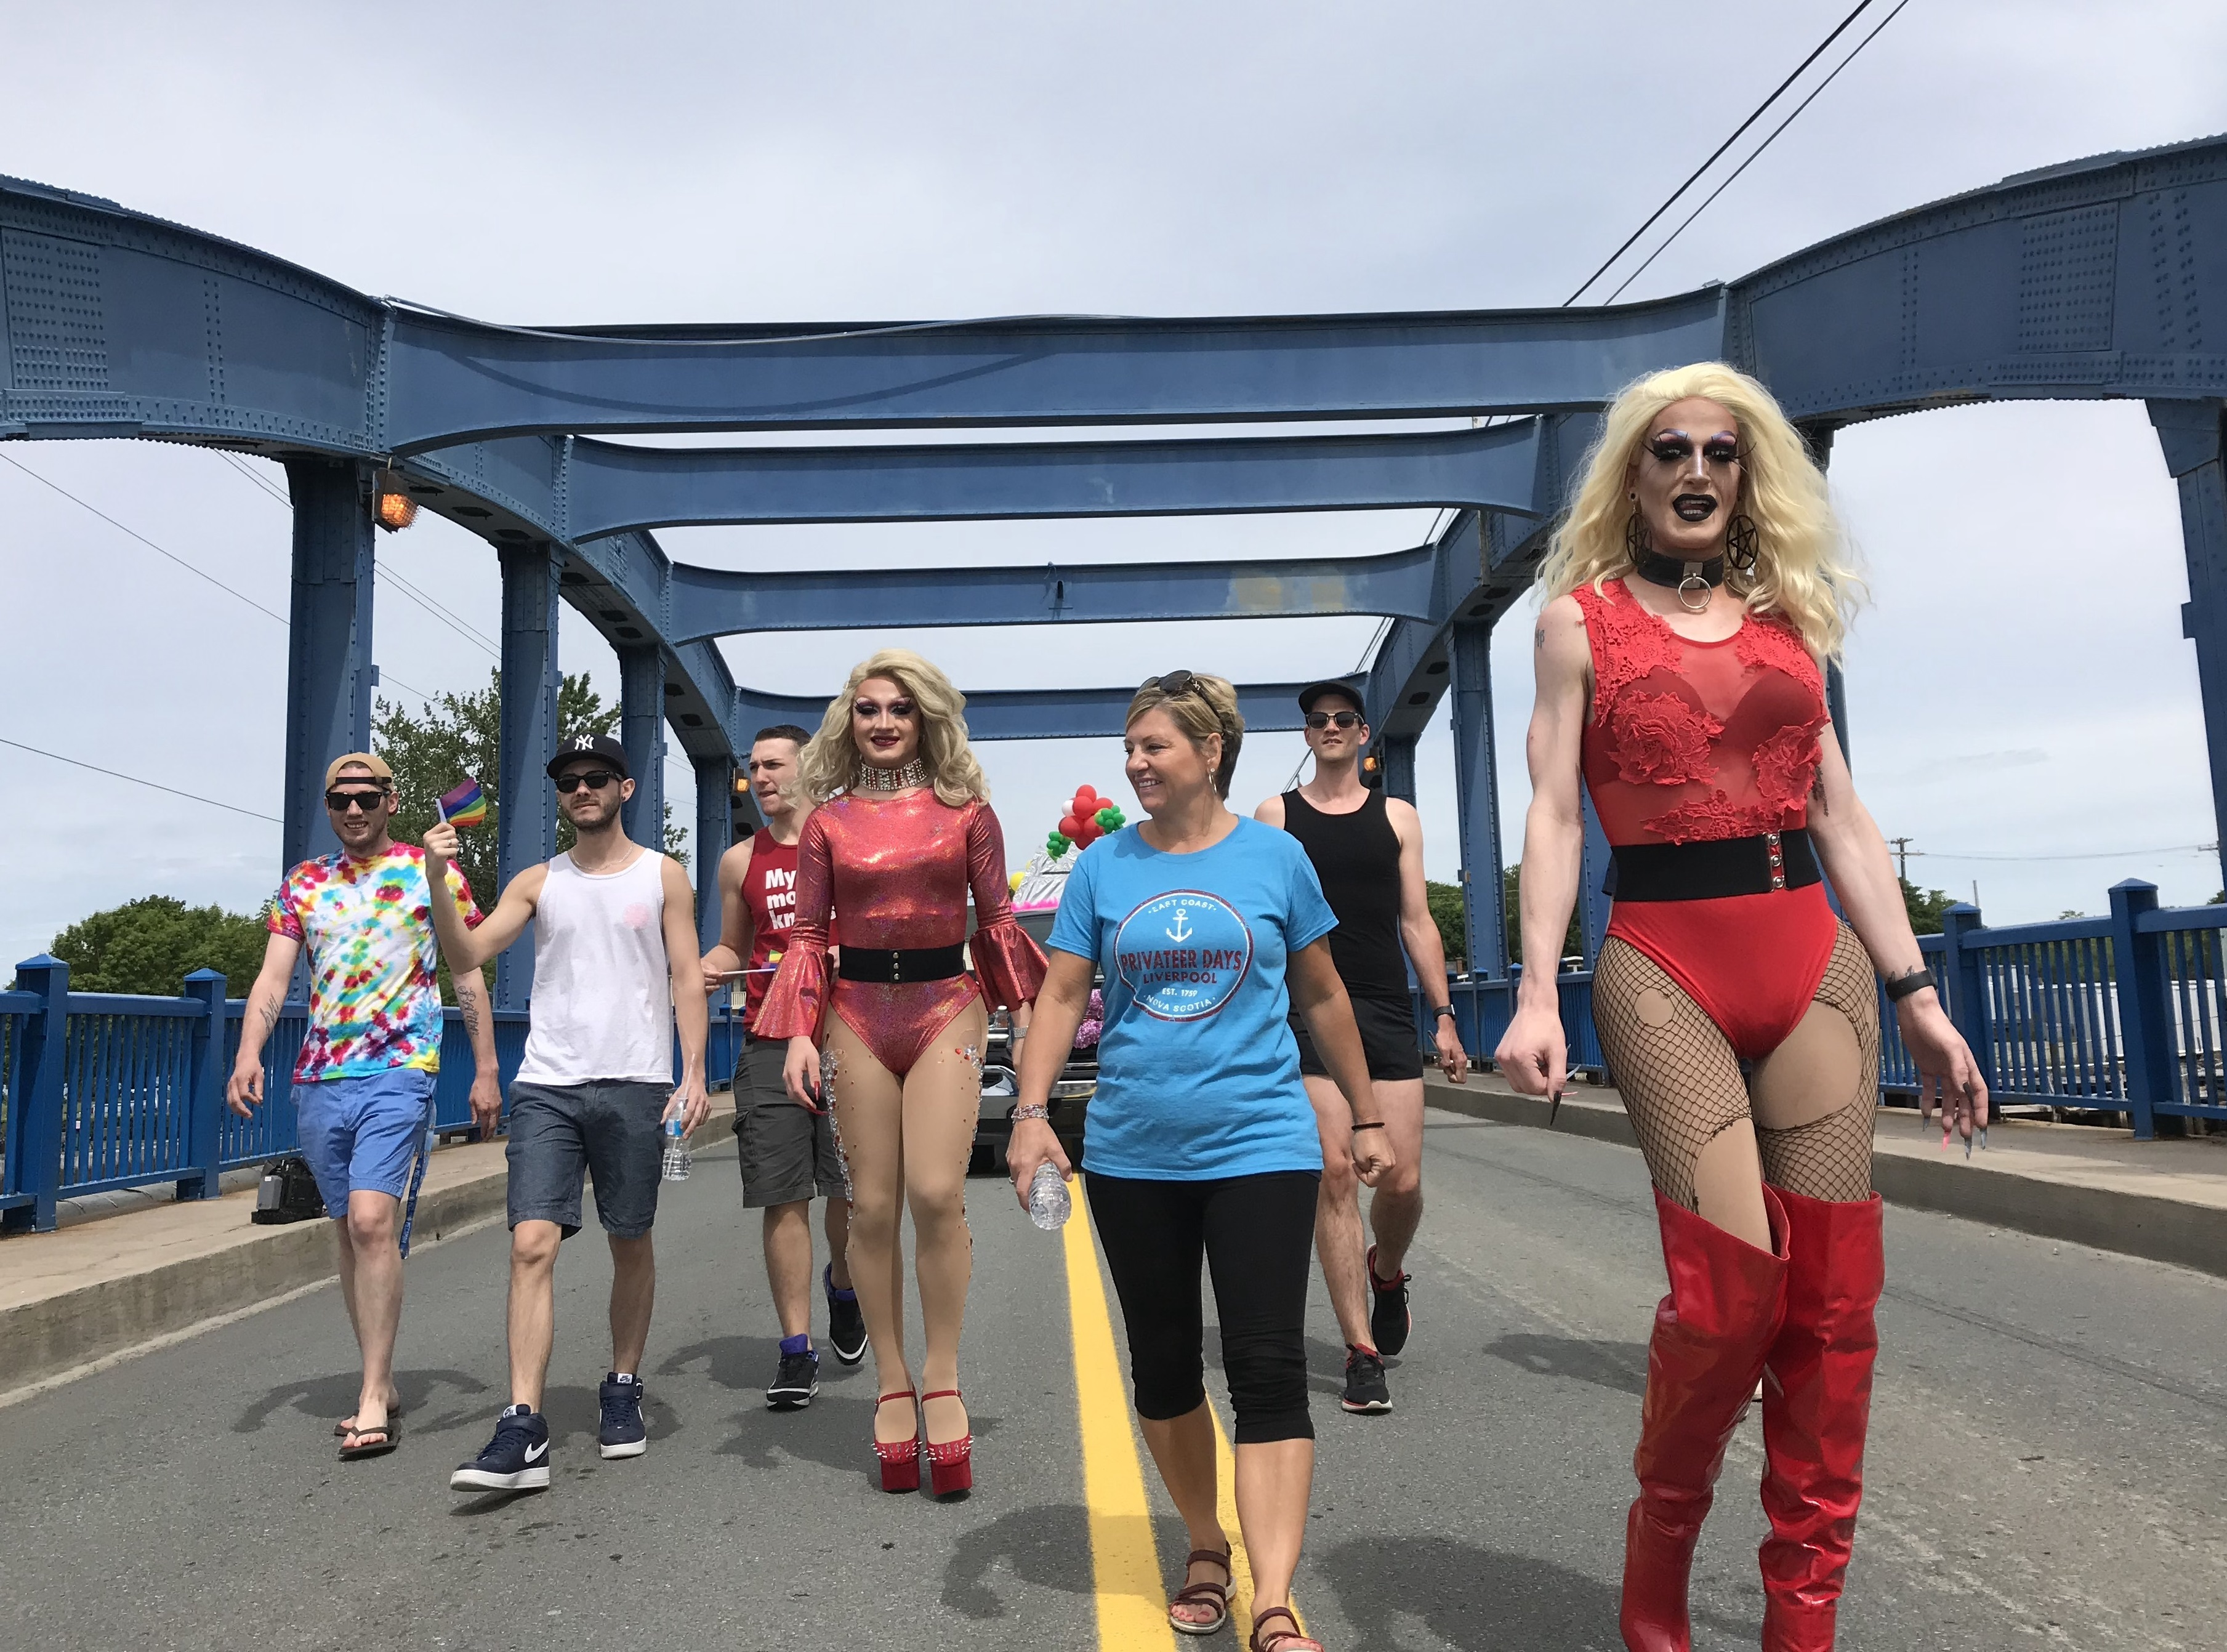 Drag queens Zara Matrix and Bridget Von Snaps march in the Privateer Days Parade in Liverpool, N.S. (Steve Berry/CBC)